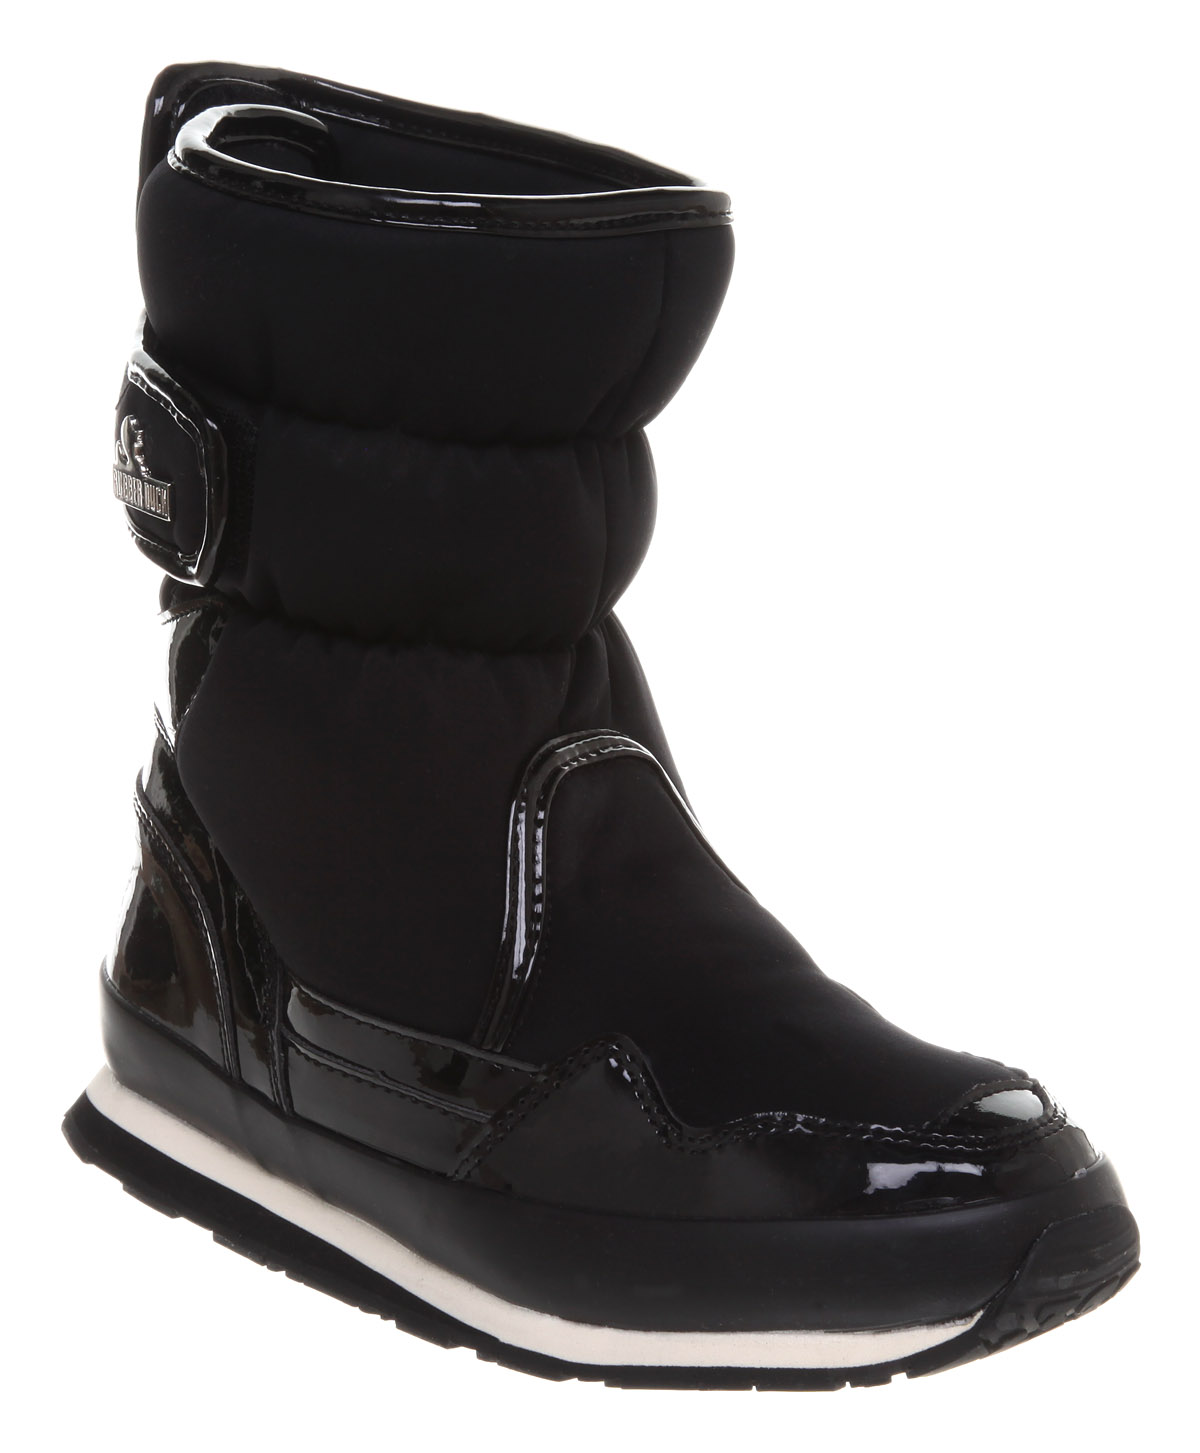 Innovative Sporto Womens Rain Boots Winter Pack Boots Duck Boots Winnie Black